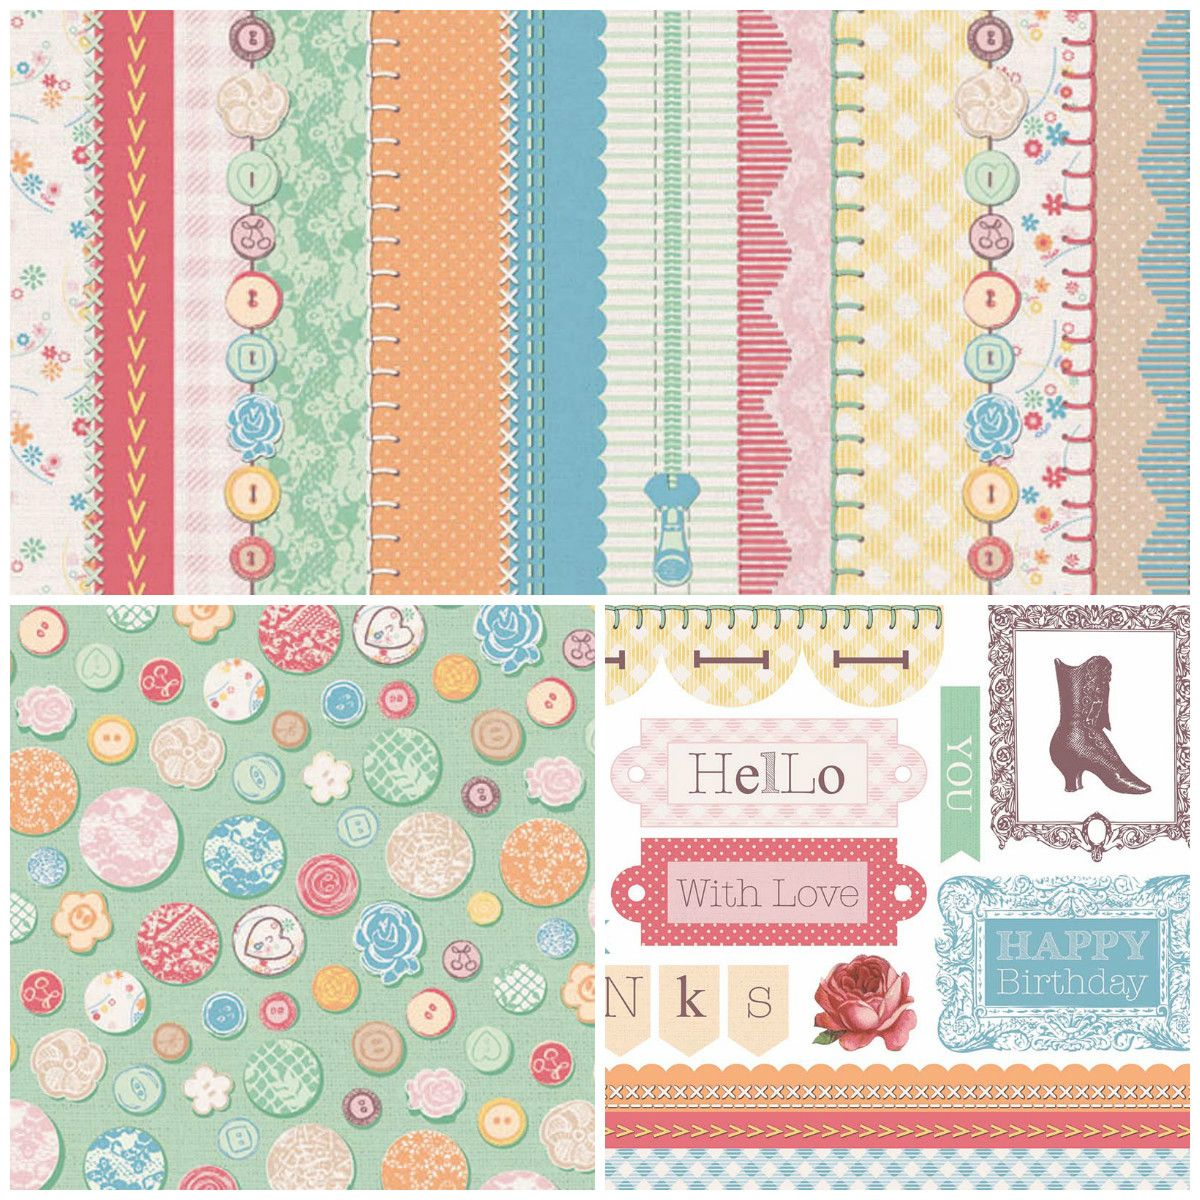 Free Vintage Treasures printable papers from Papercraft Inspirations!